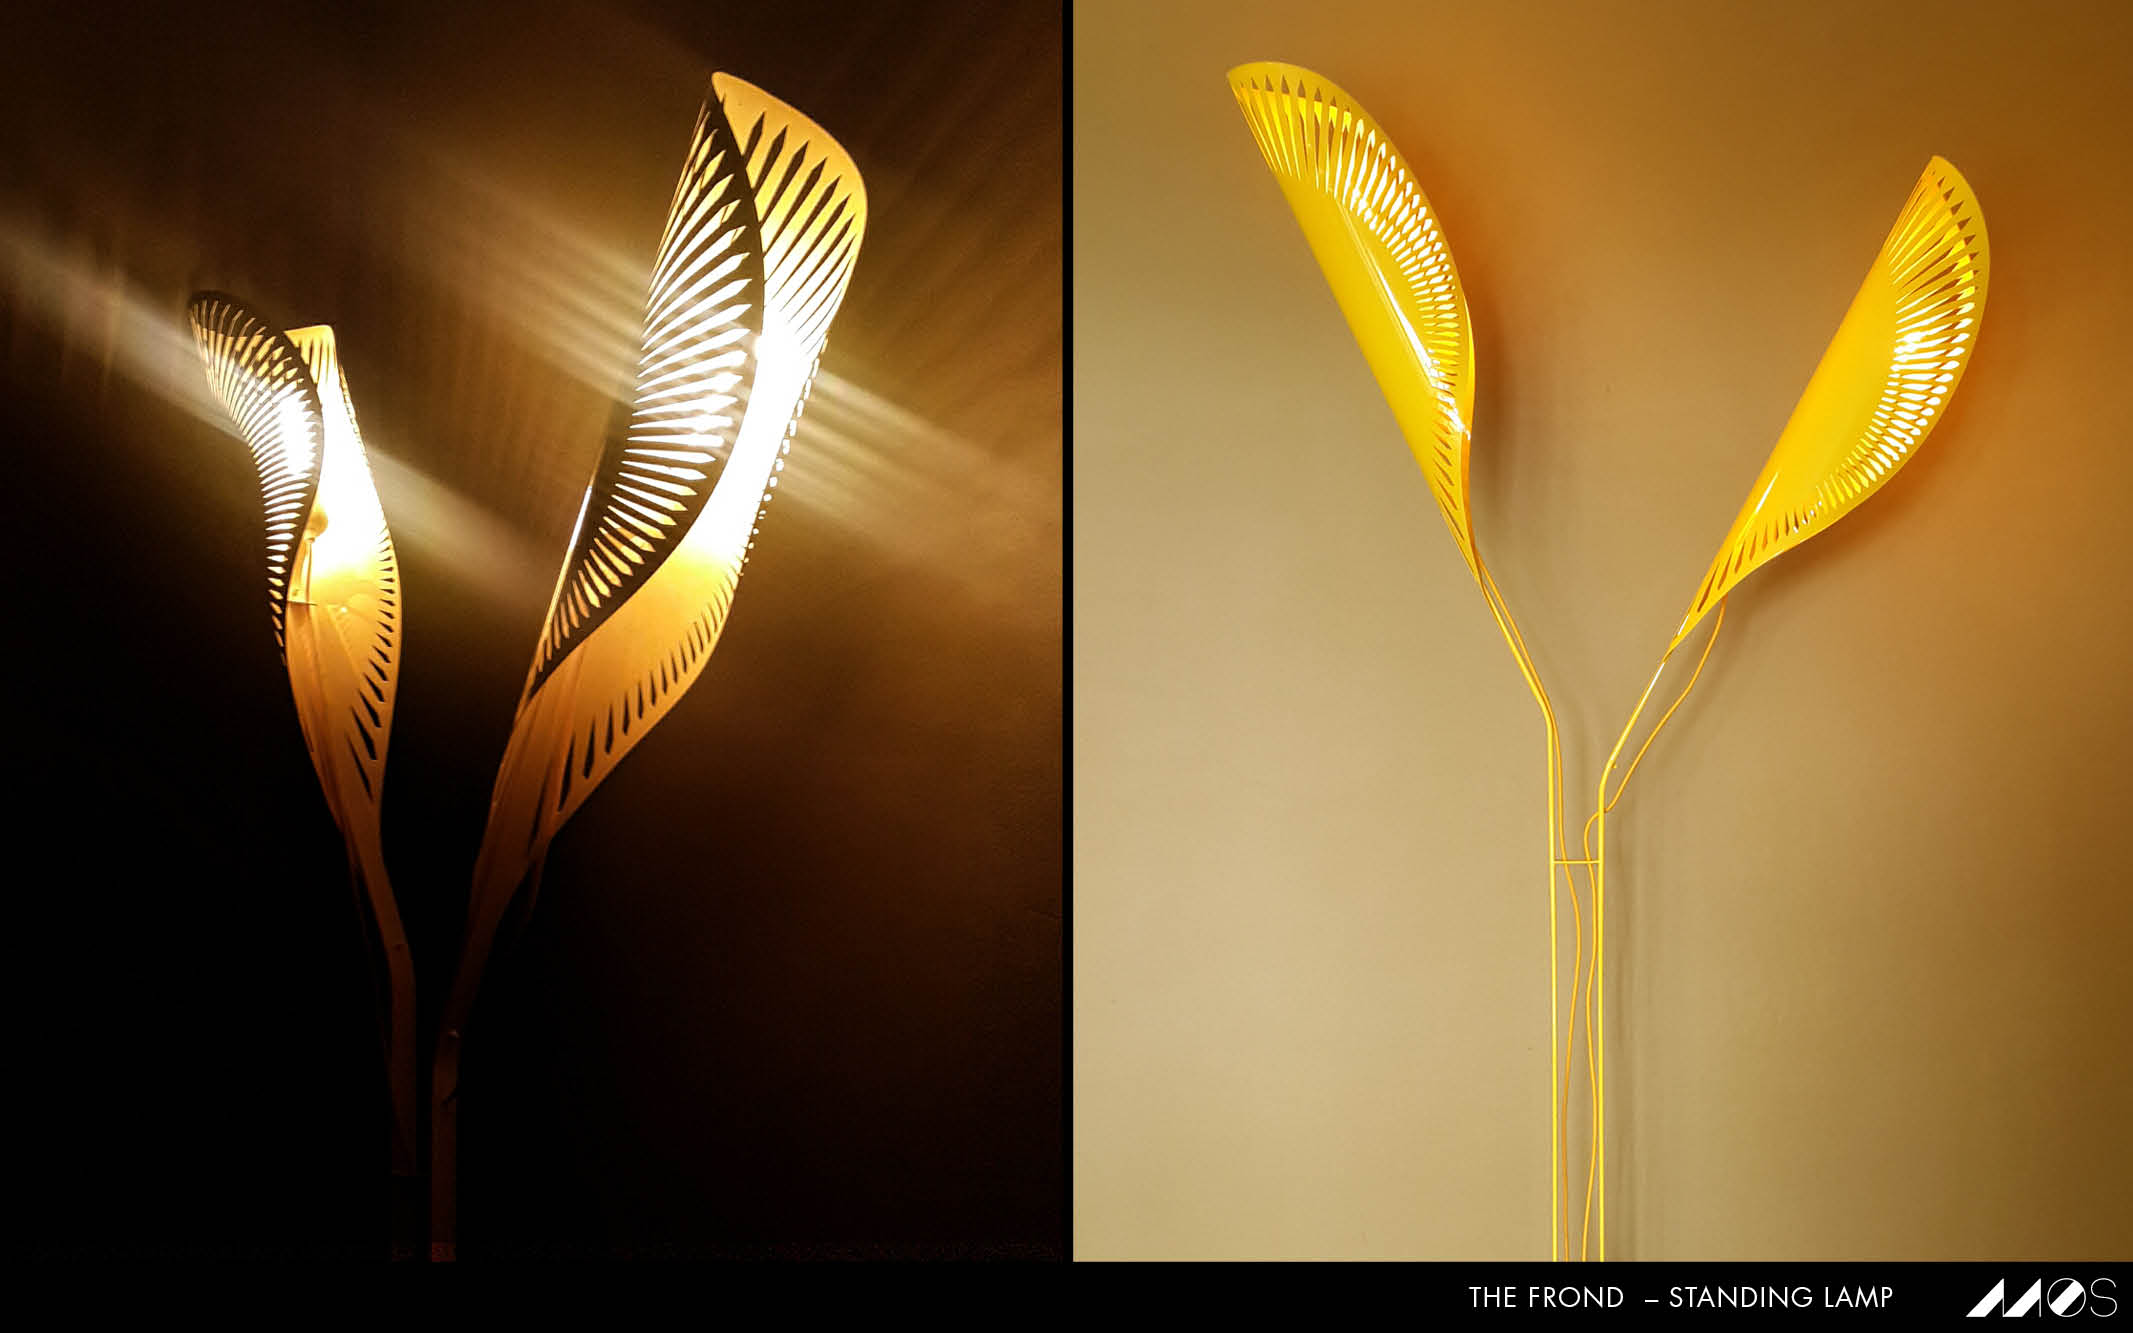 MOS frond standing lamp on & off.jpg